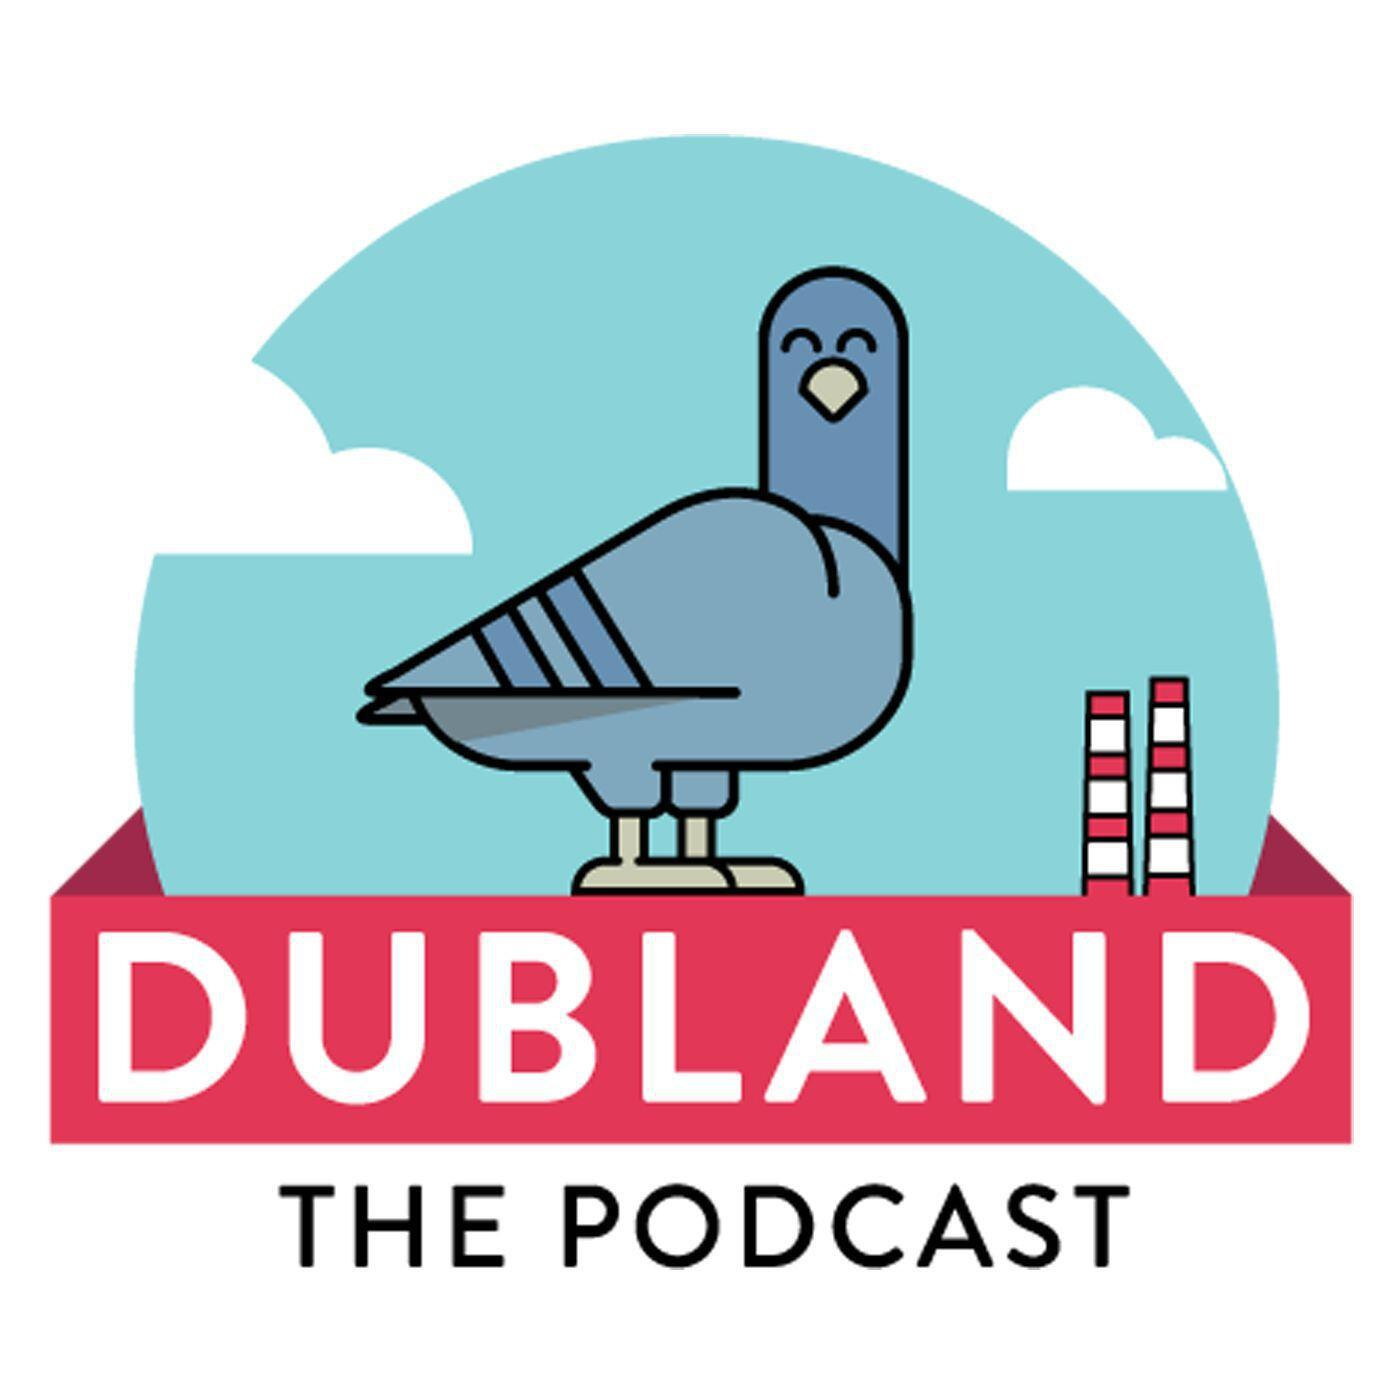 71 DUBLAND The Podcast